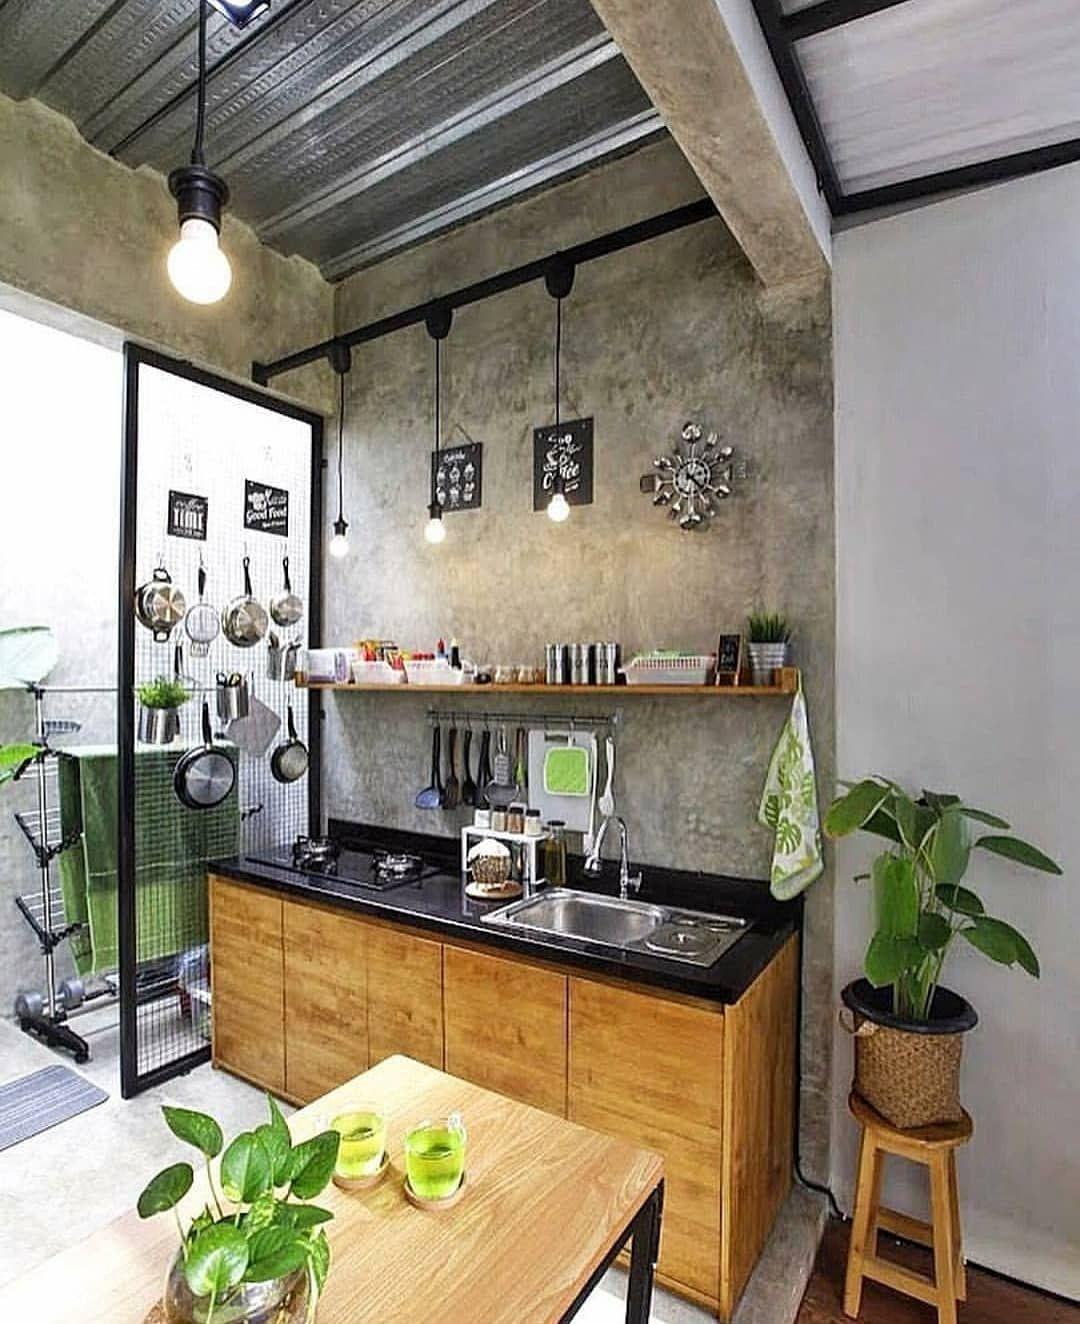 Find Out How To Design Your Own Kitchen We Have Given The Best Small Kitchen Remodel Ideas That Perf Kitchen Design Small Kitchen Remodel Small Kitchen Design